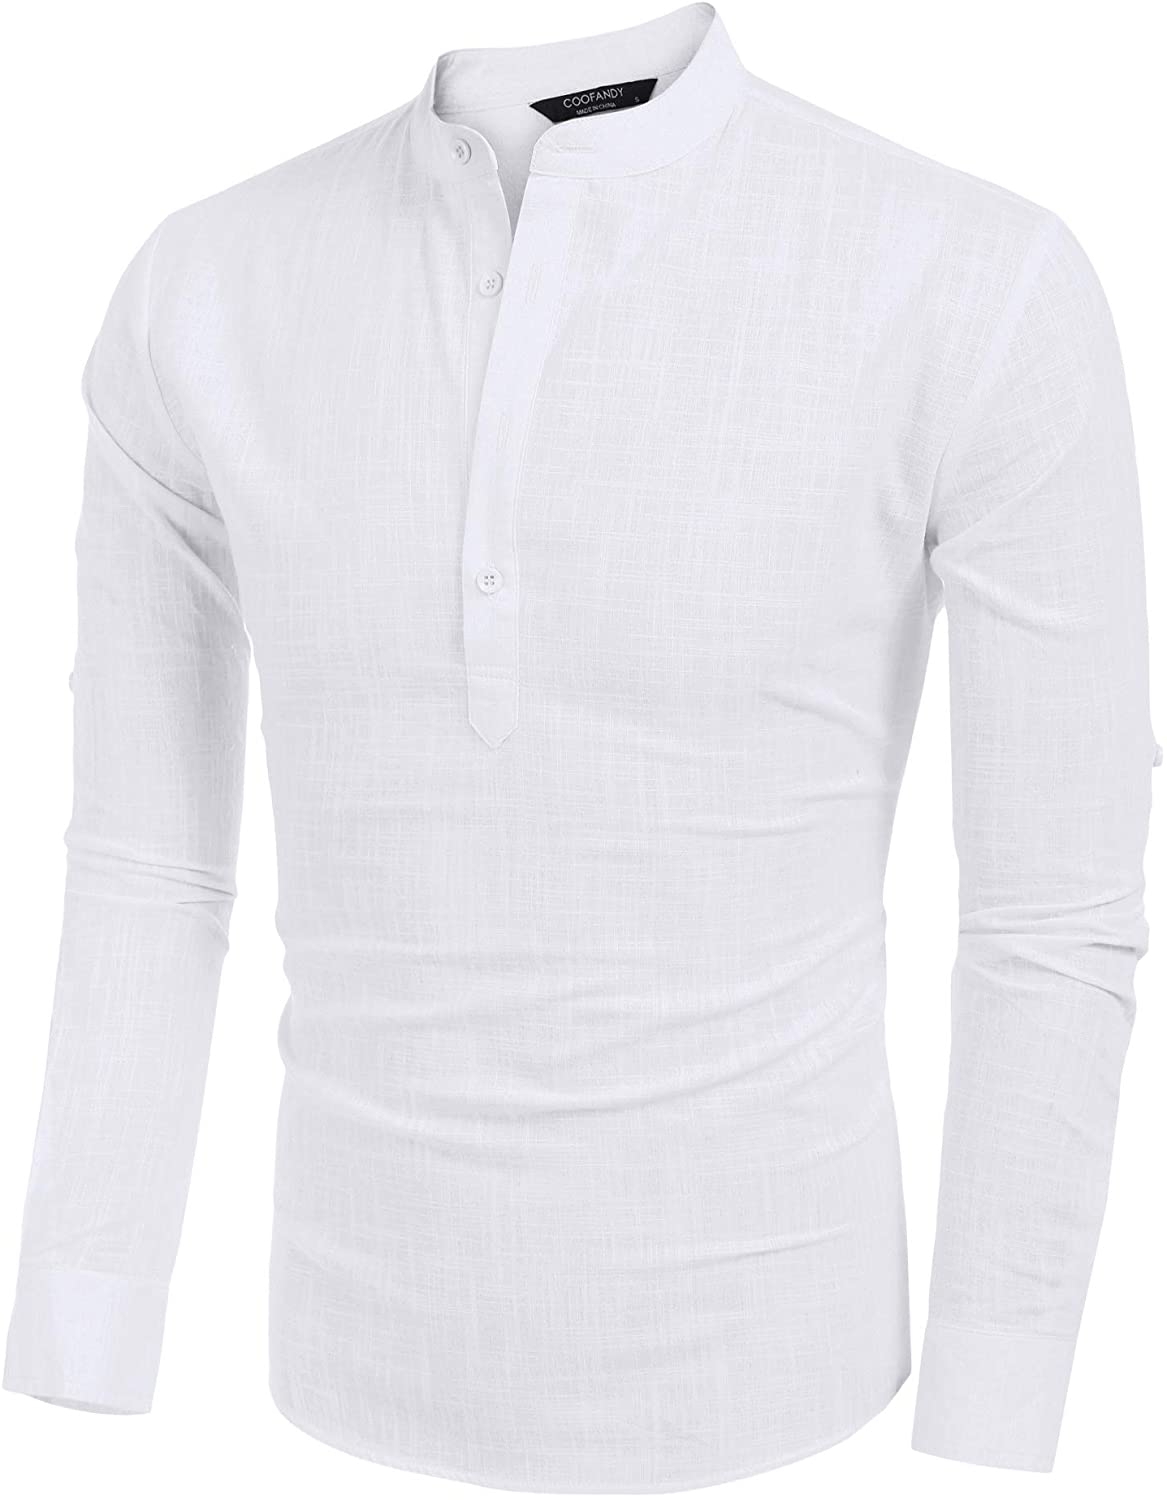 LecGee Mens Cotton Linen Henley Shirt Casual Long Sleeve Hippie T Shirt Beach Yoga Tops